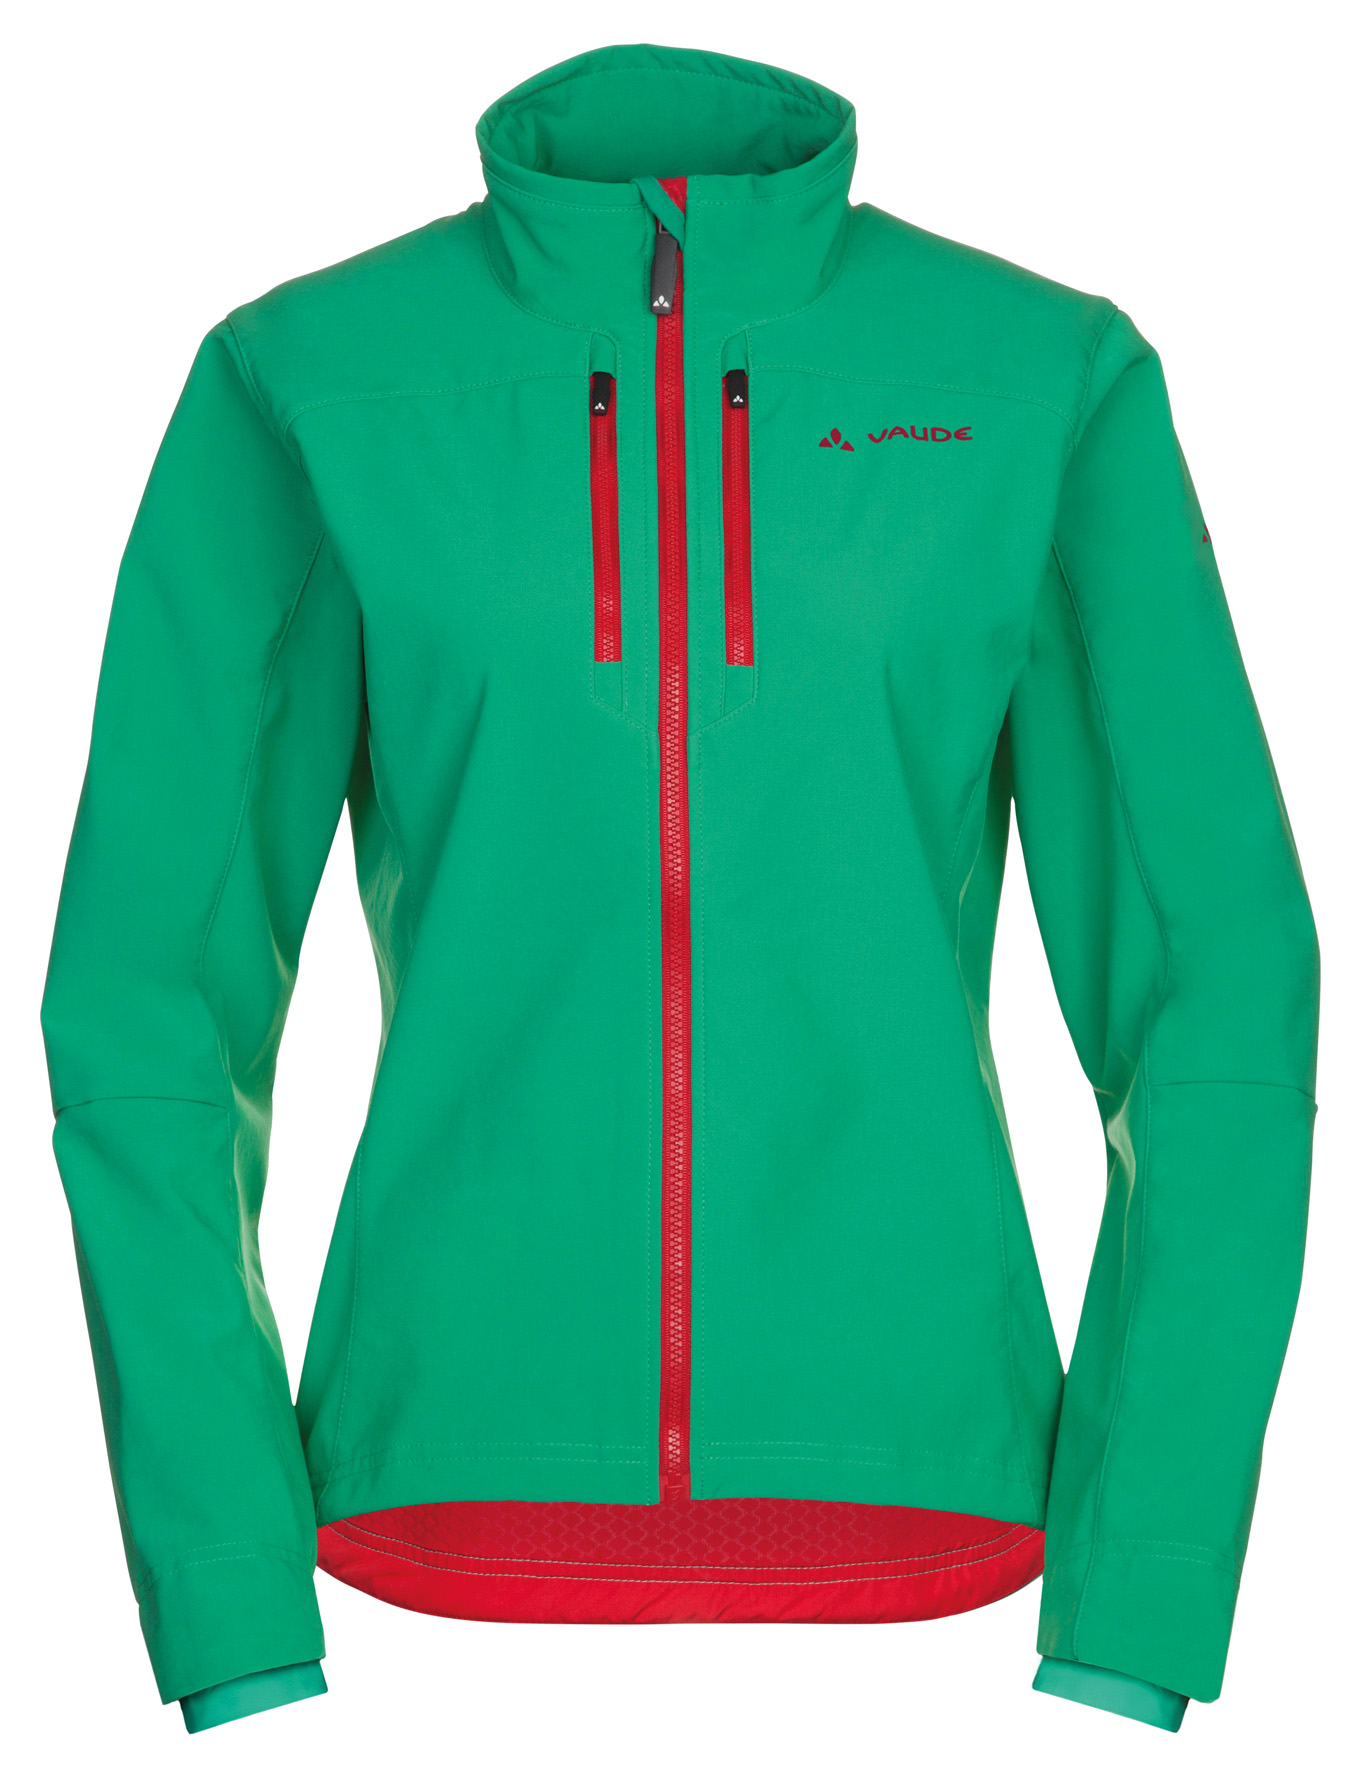 Women´s Qimsa Softshell Jacket atlantis Größe 36 - Women´s Qimsa Softshell Jacket atlantis Größe 36